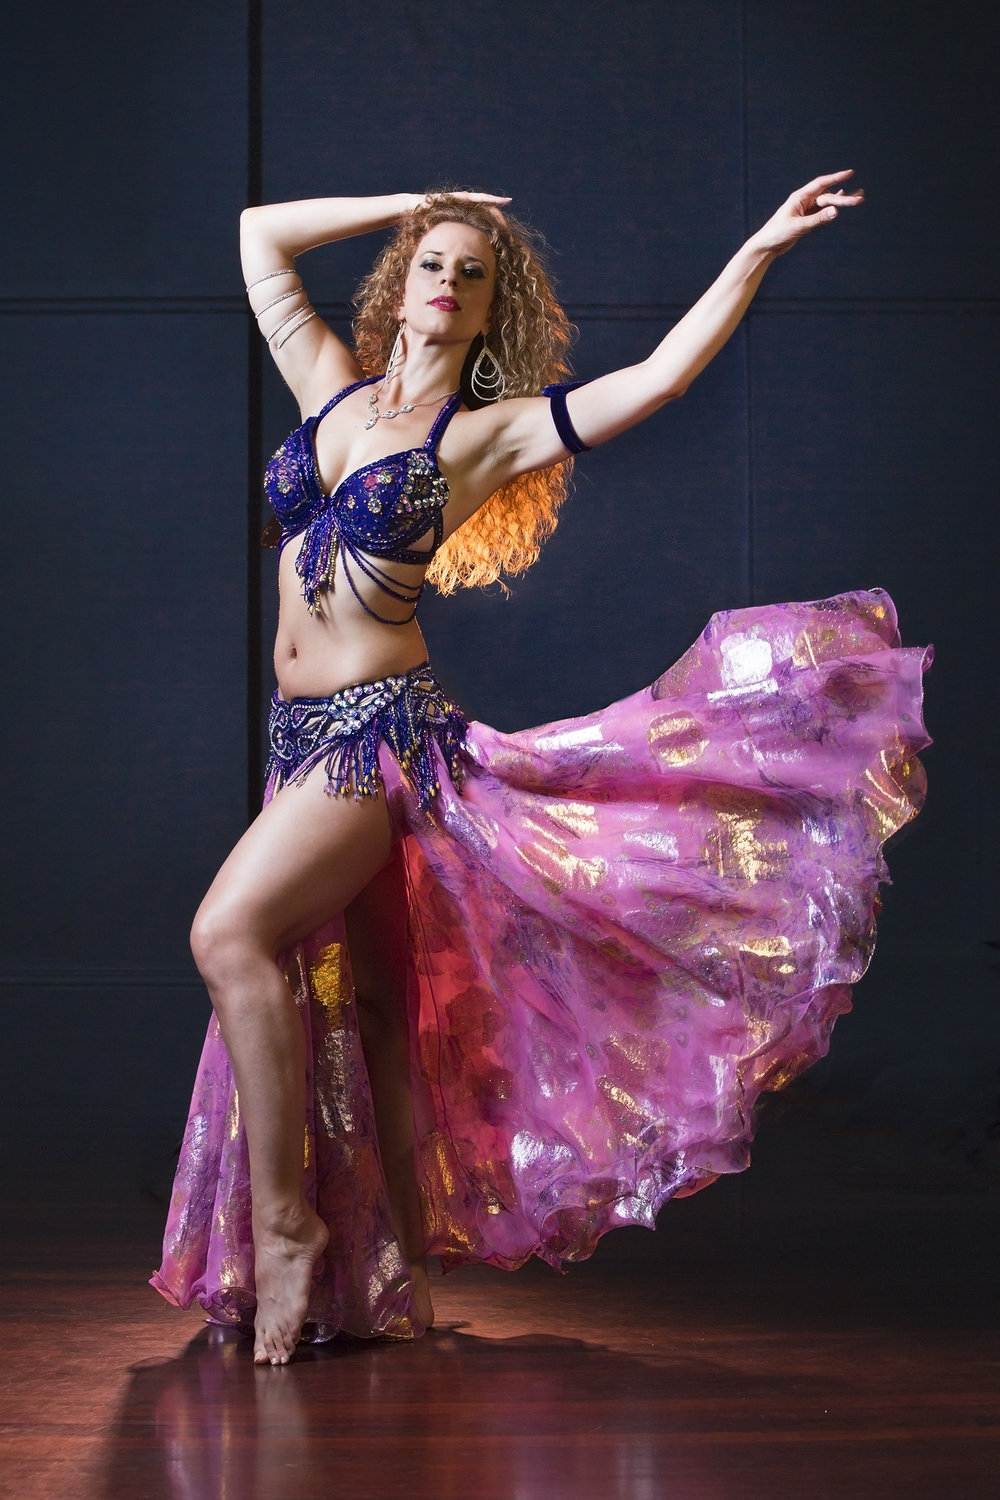 belly dancers Melbourne hire, belly dance classes Melbourne